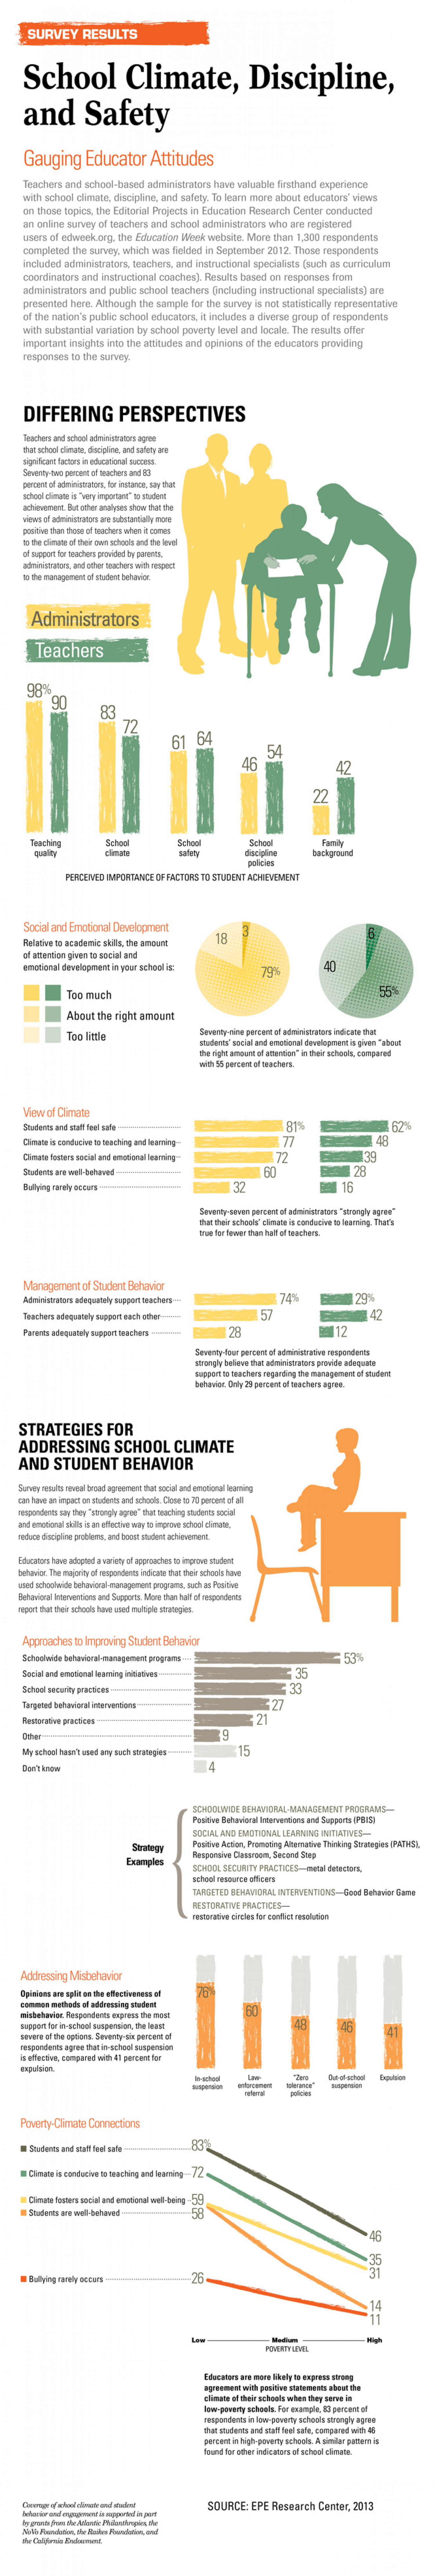 School Climate, Discipline, and Safety: Gauging Educator Attitudes Infographic